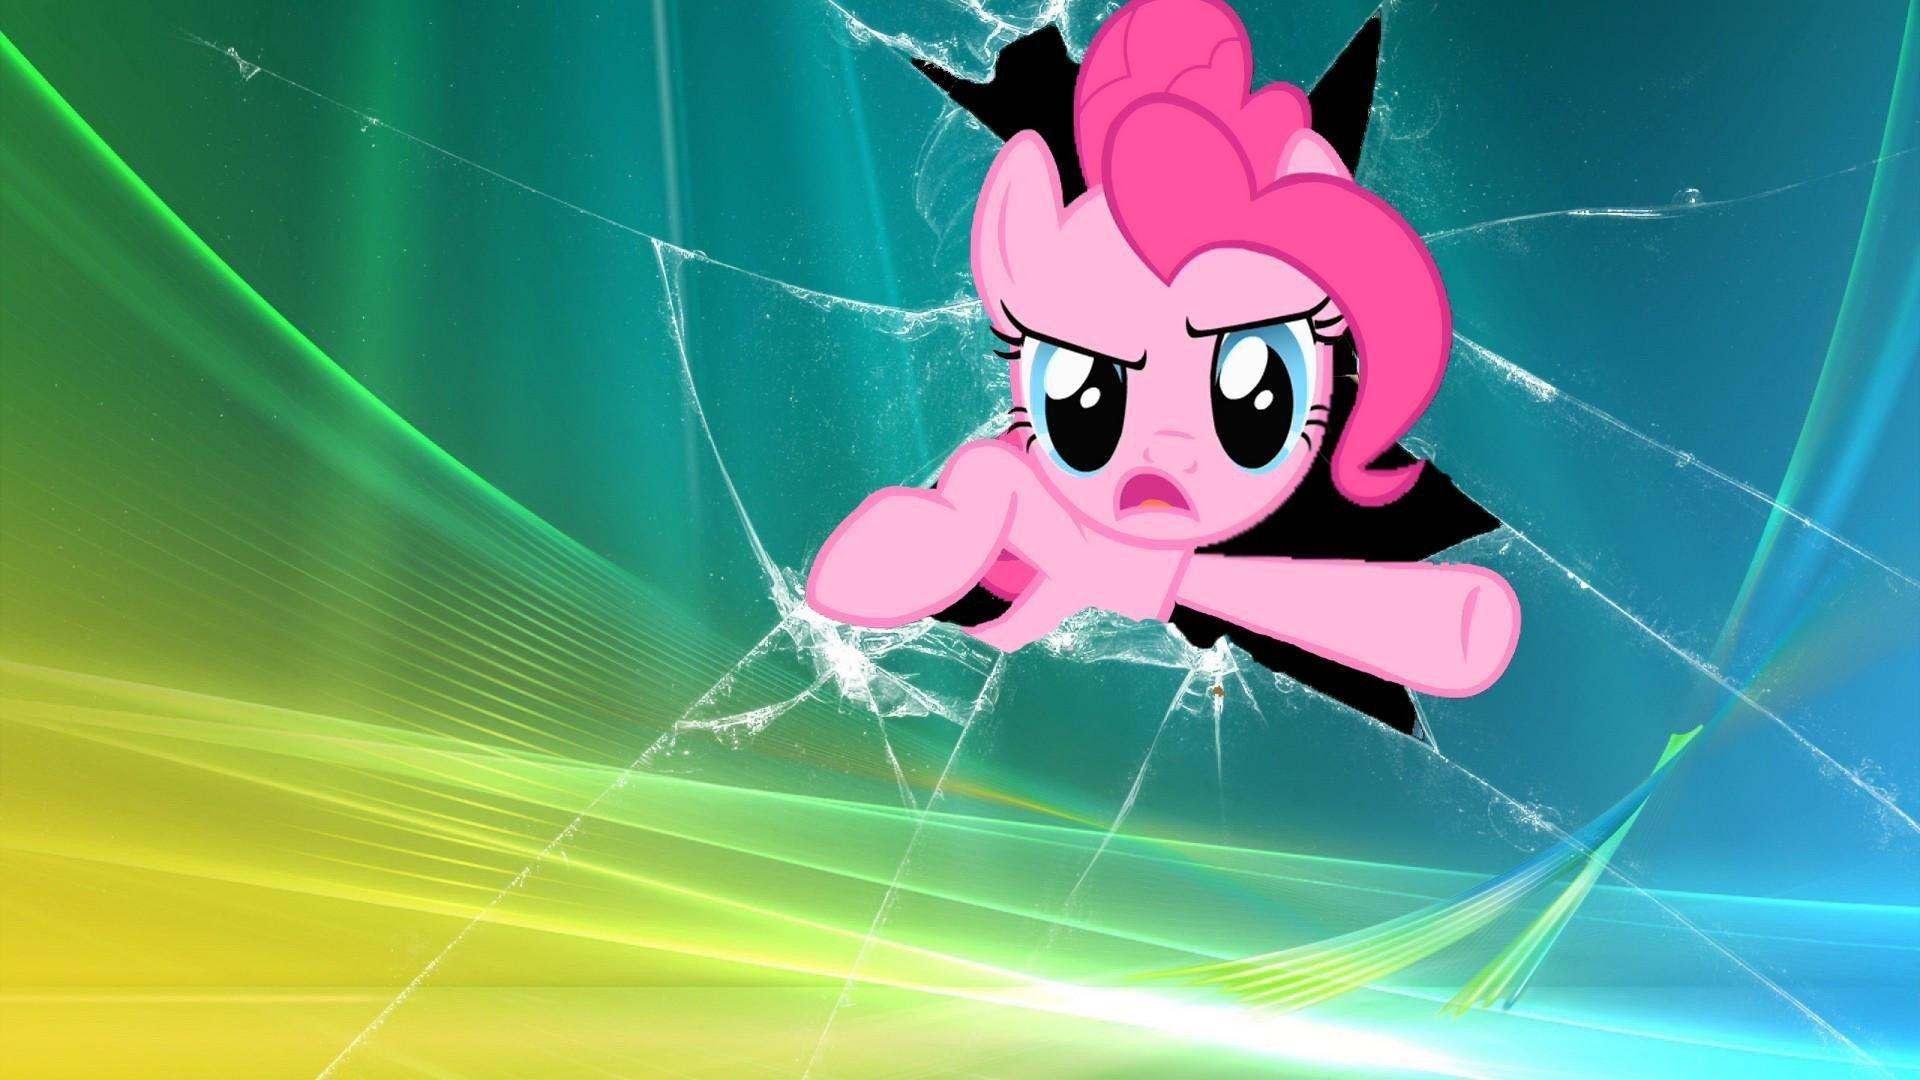 mlp background pony wallpapers - photo #19